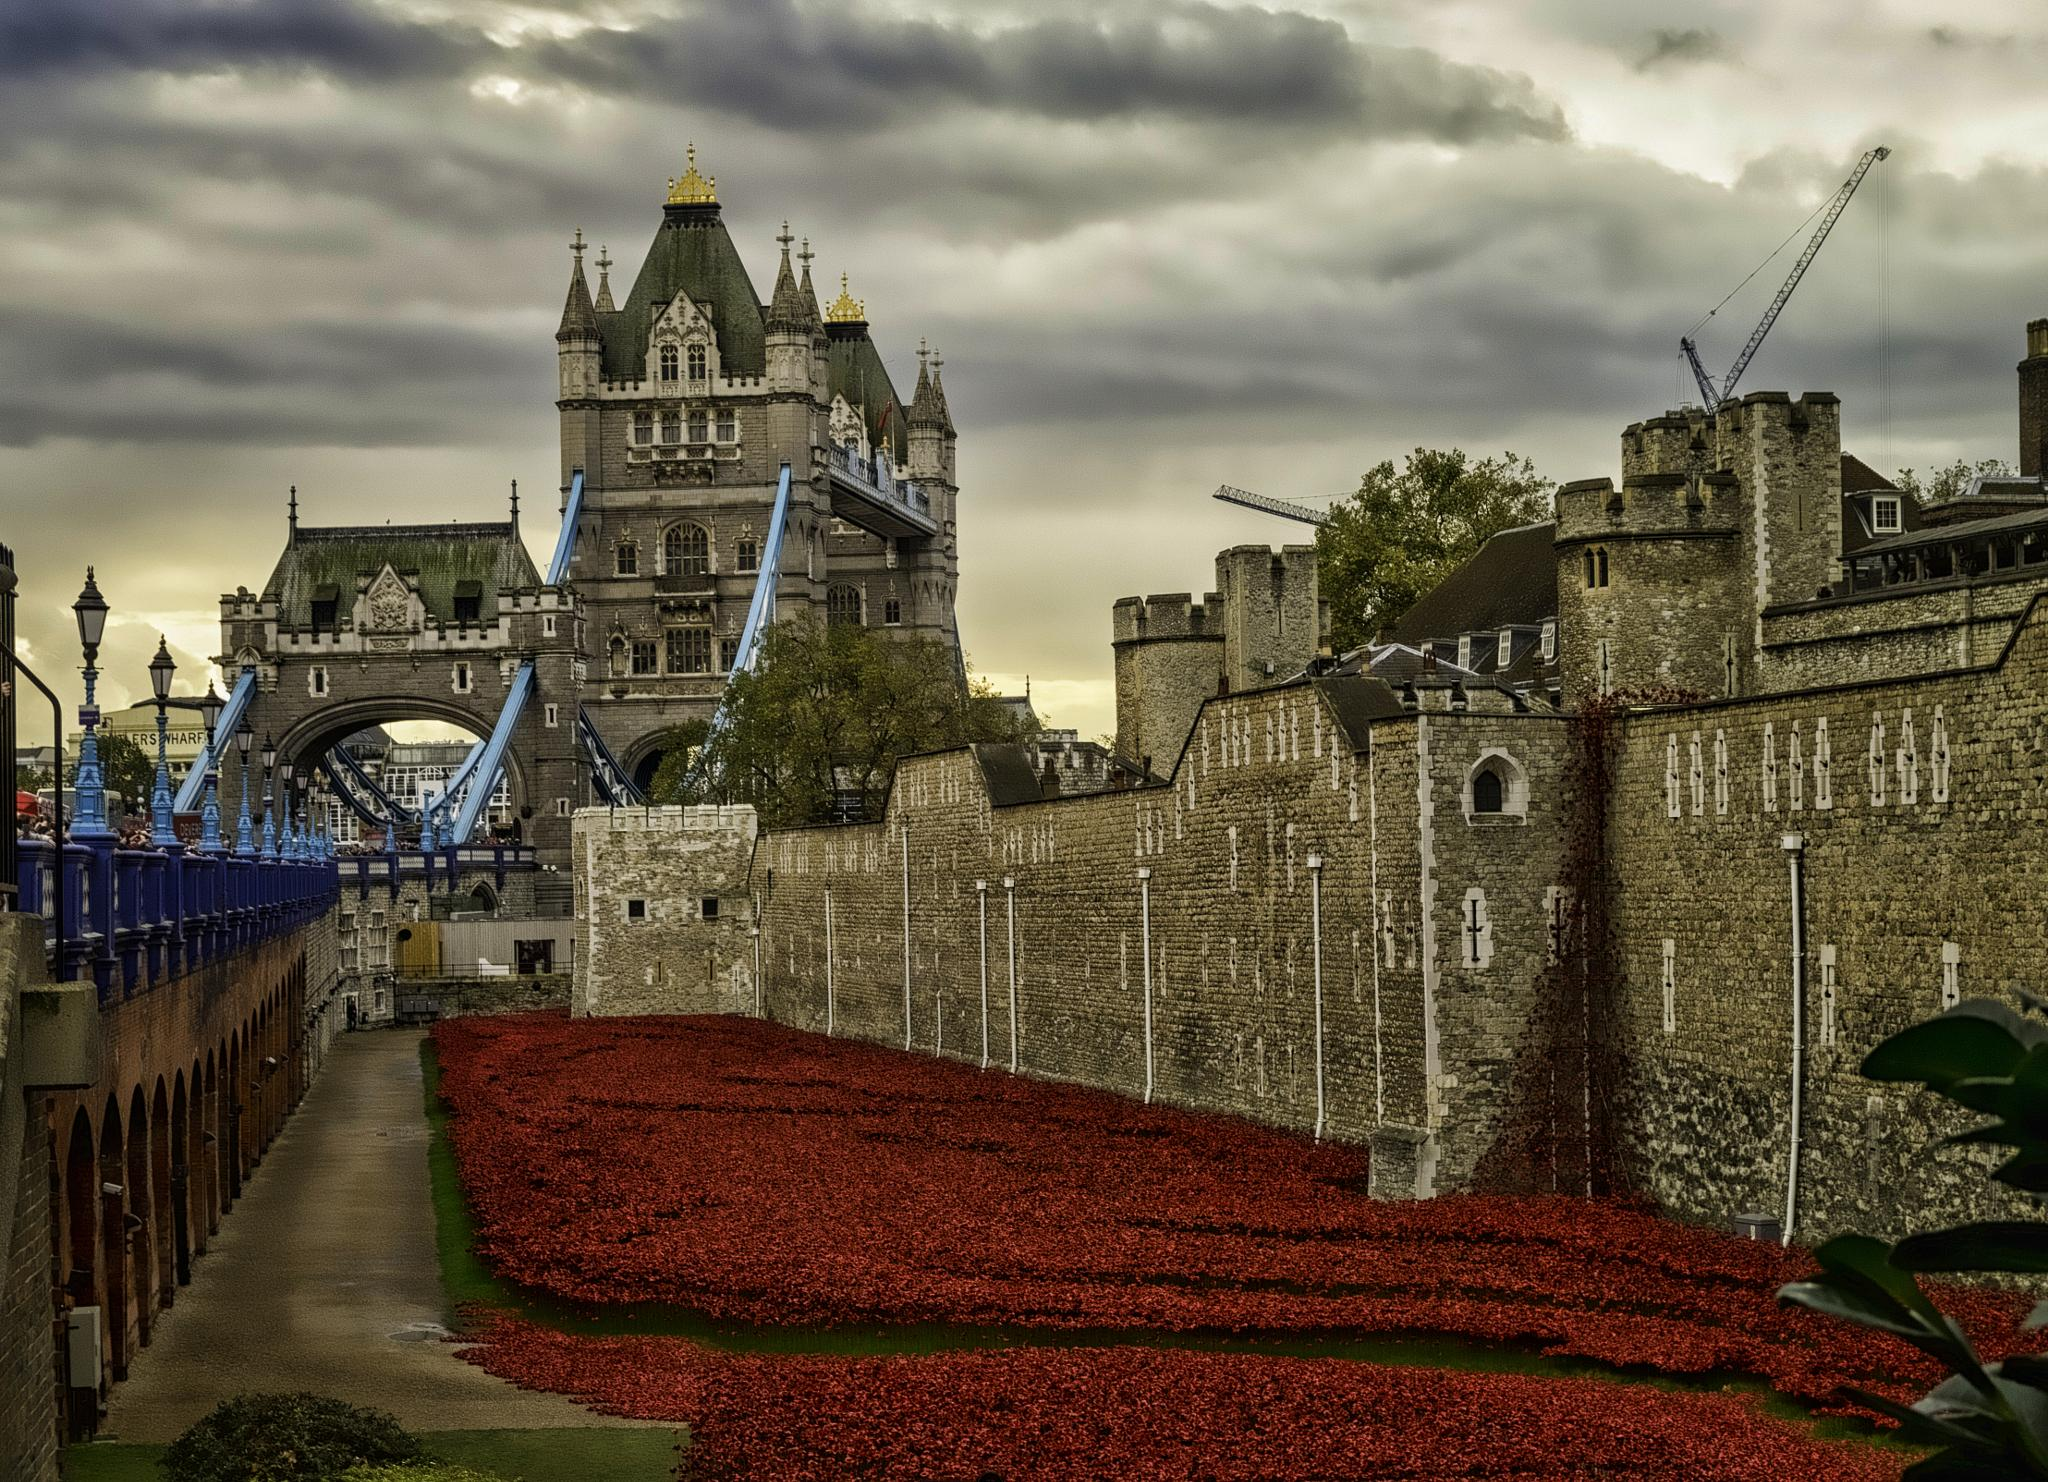 Lest we forget by Alan Fife